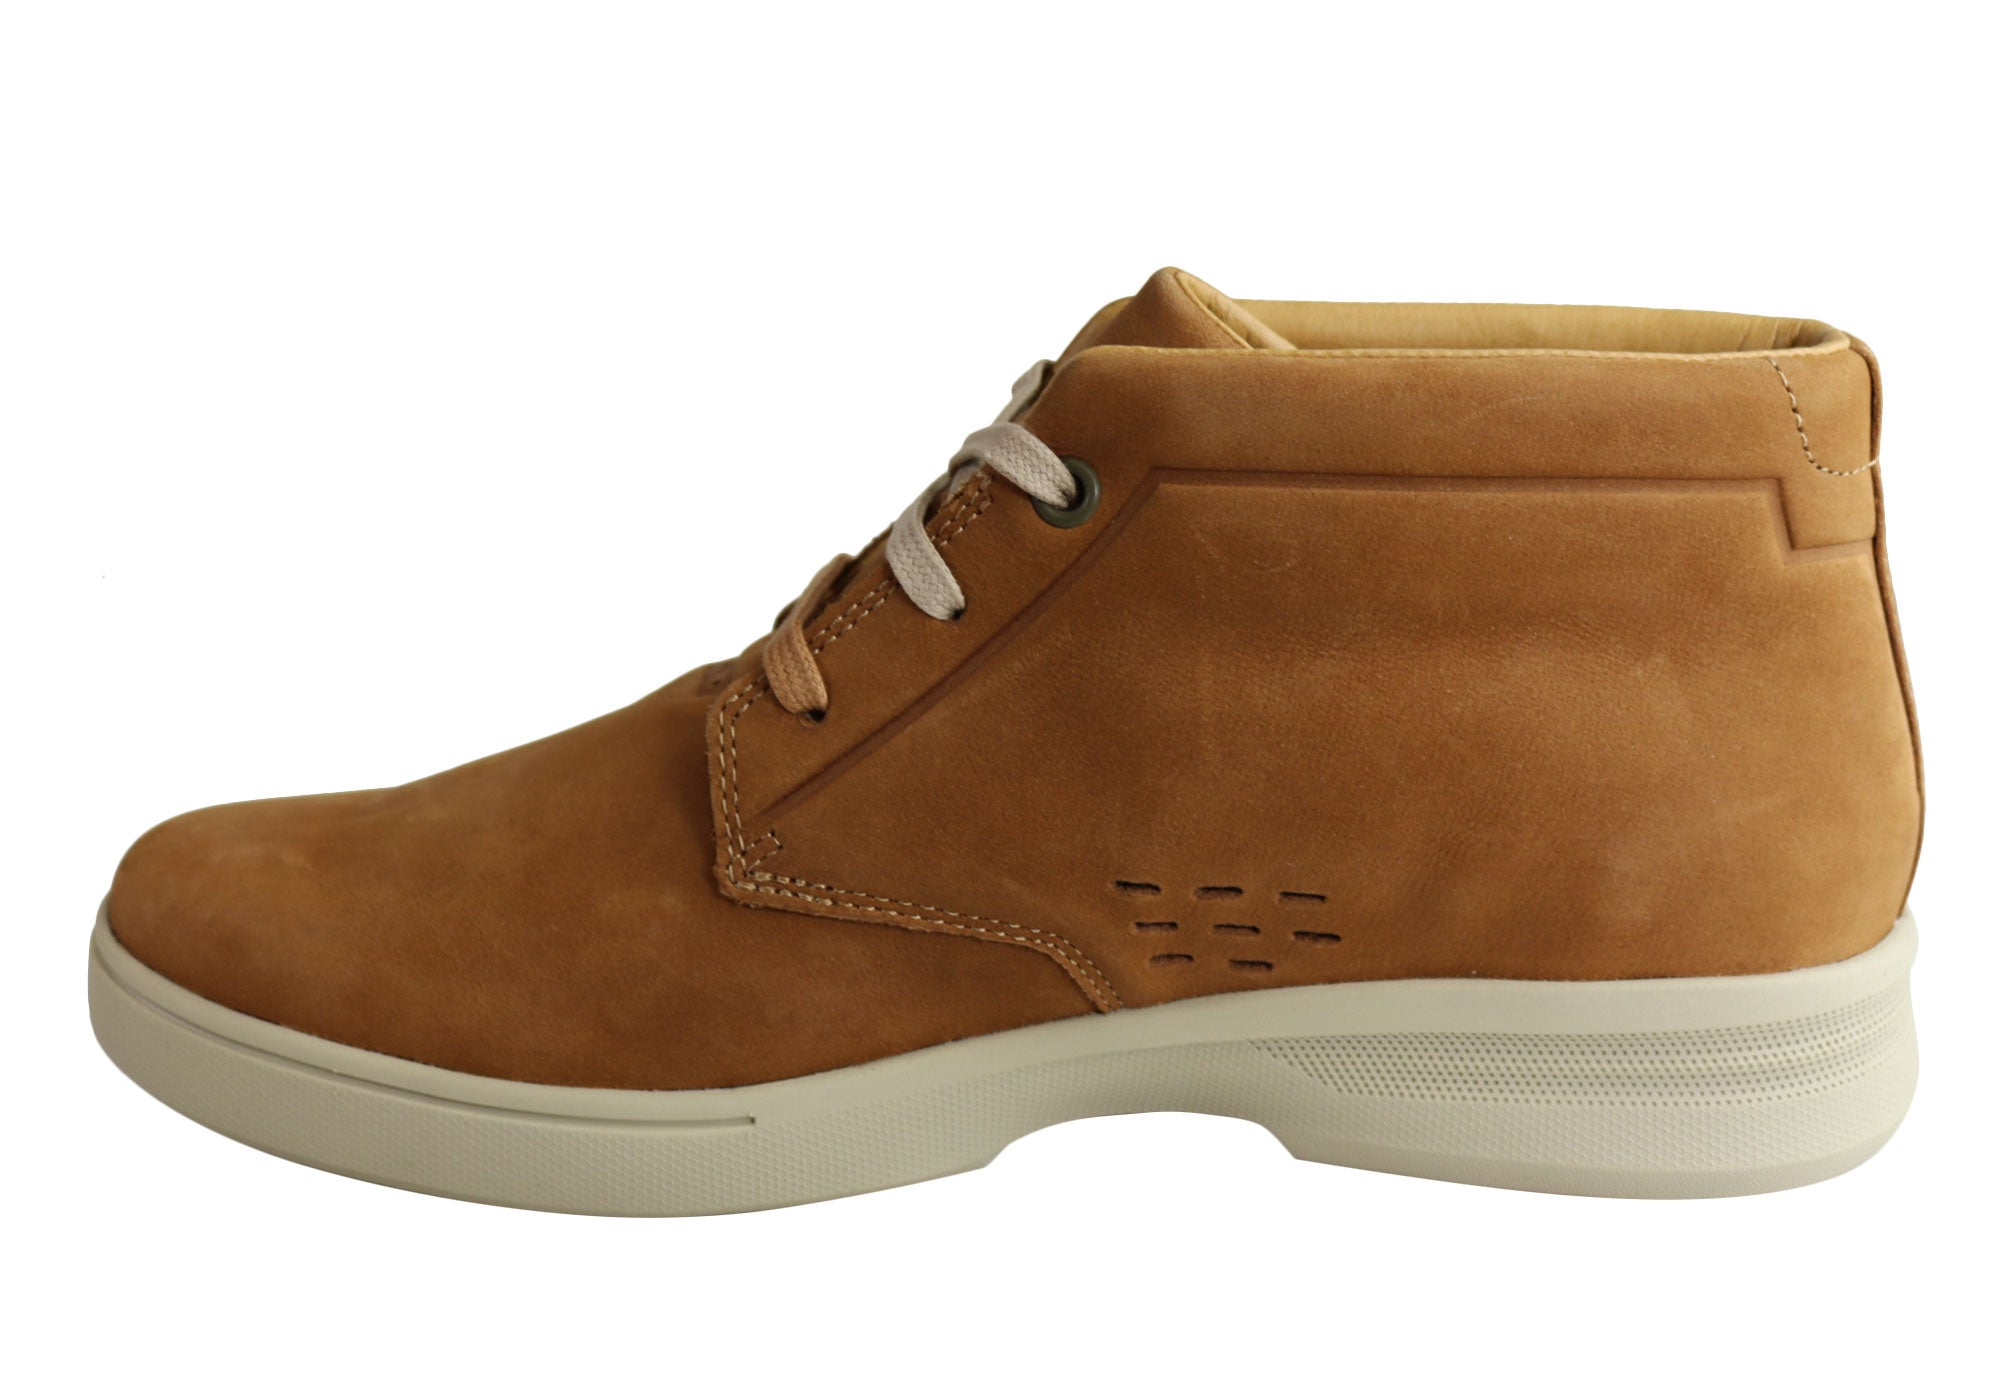 Brand-New-Caterpillar-Theorem-Mens-Lace-Up-Leather-Comfortable-Casual-Boots thumbnail 8